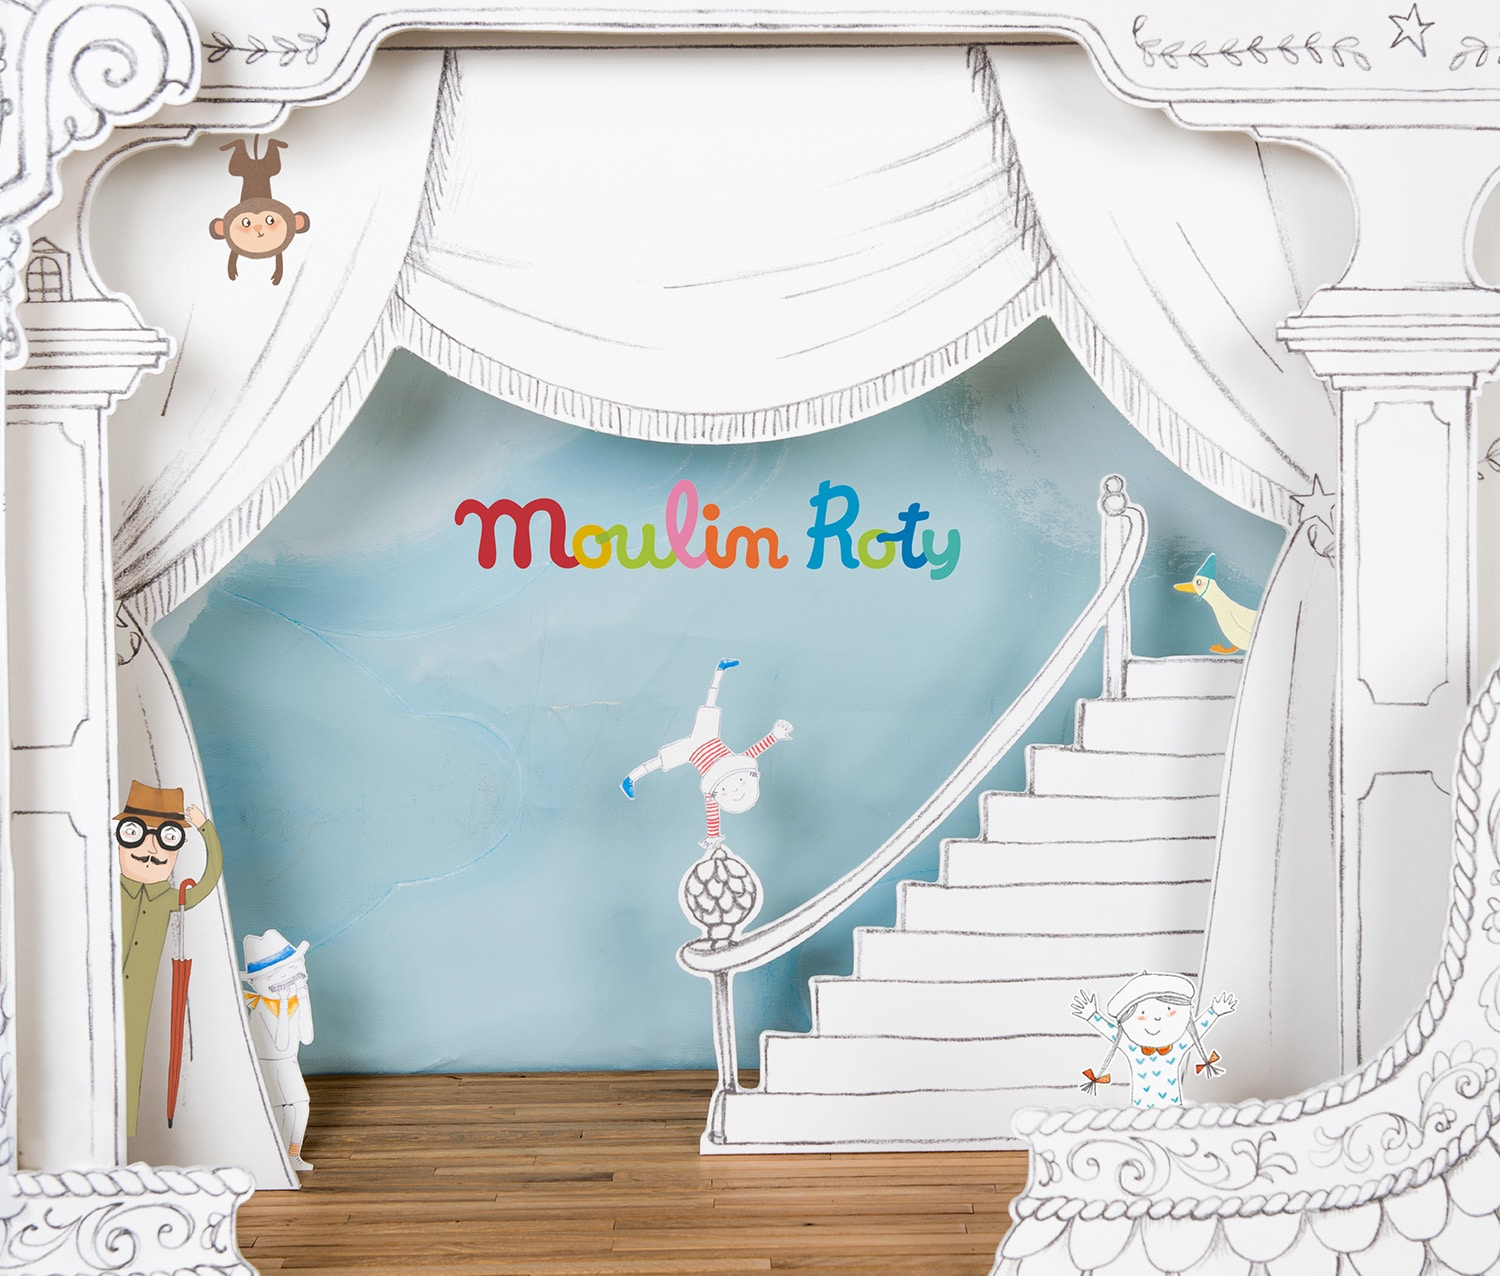 Moulin Roty Memoire d'enfant 2016